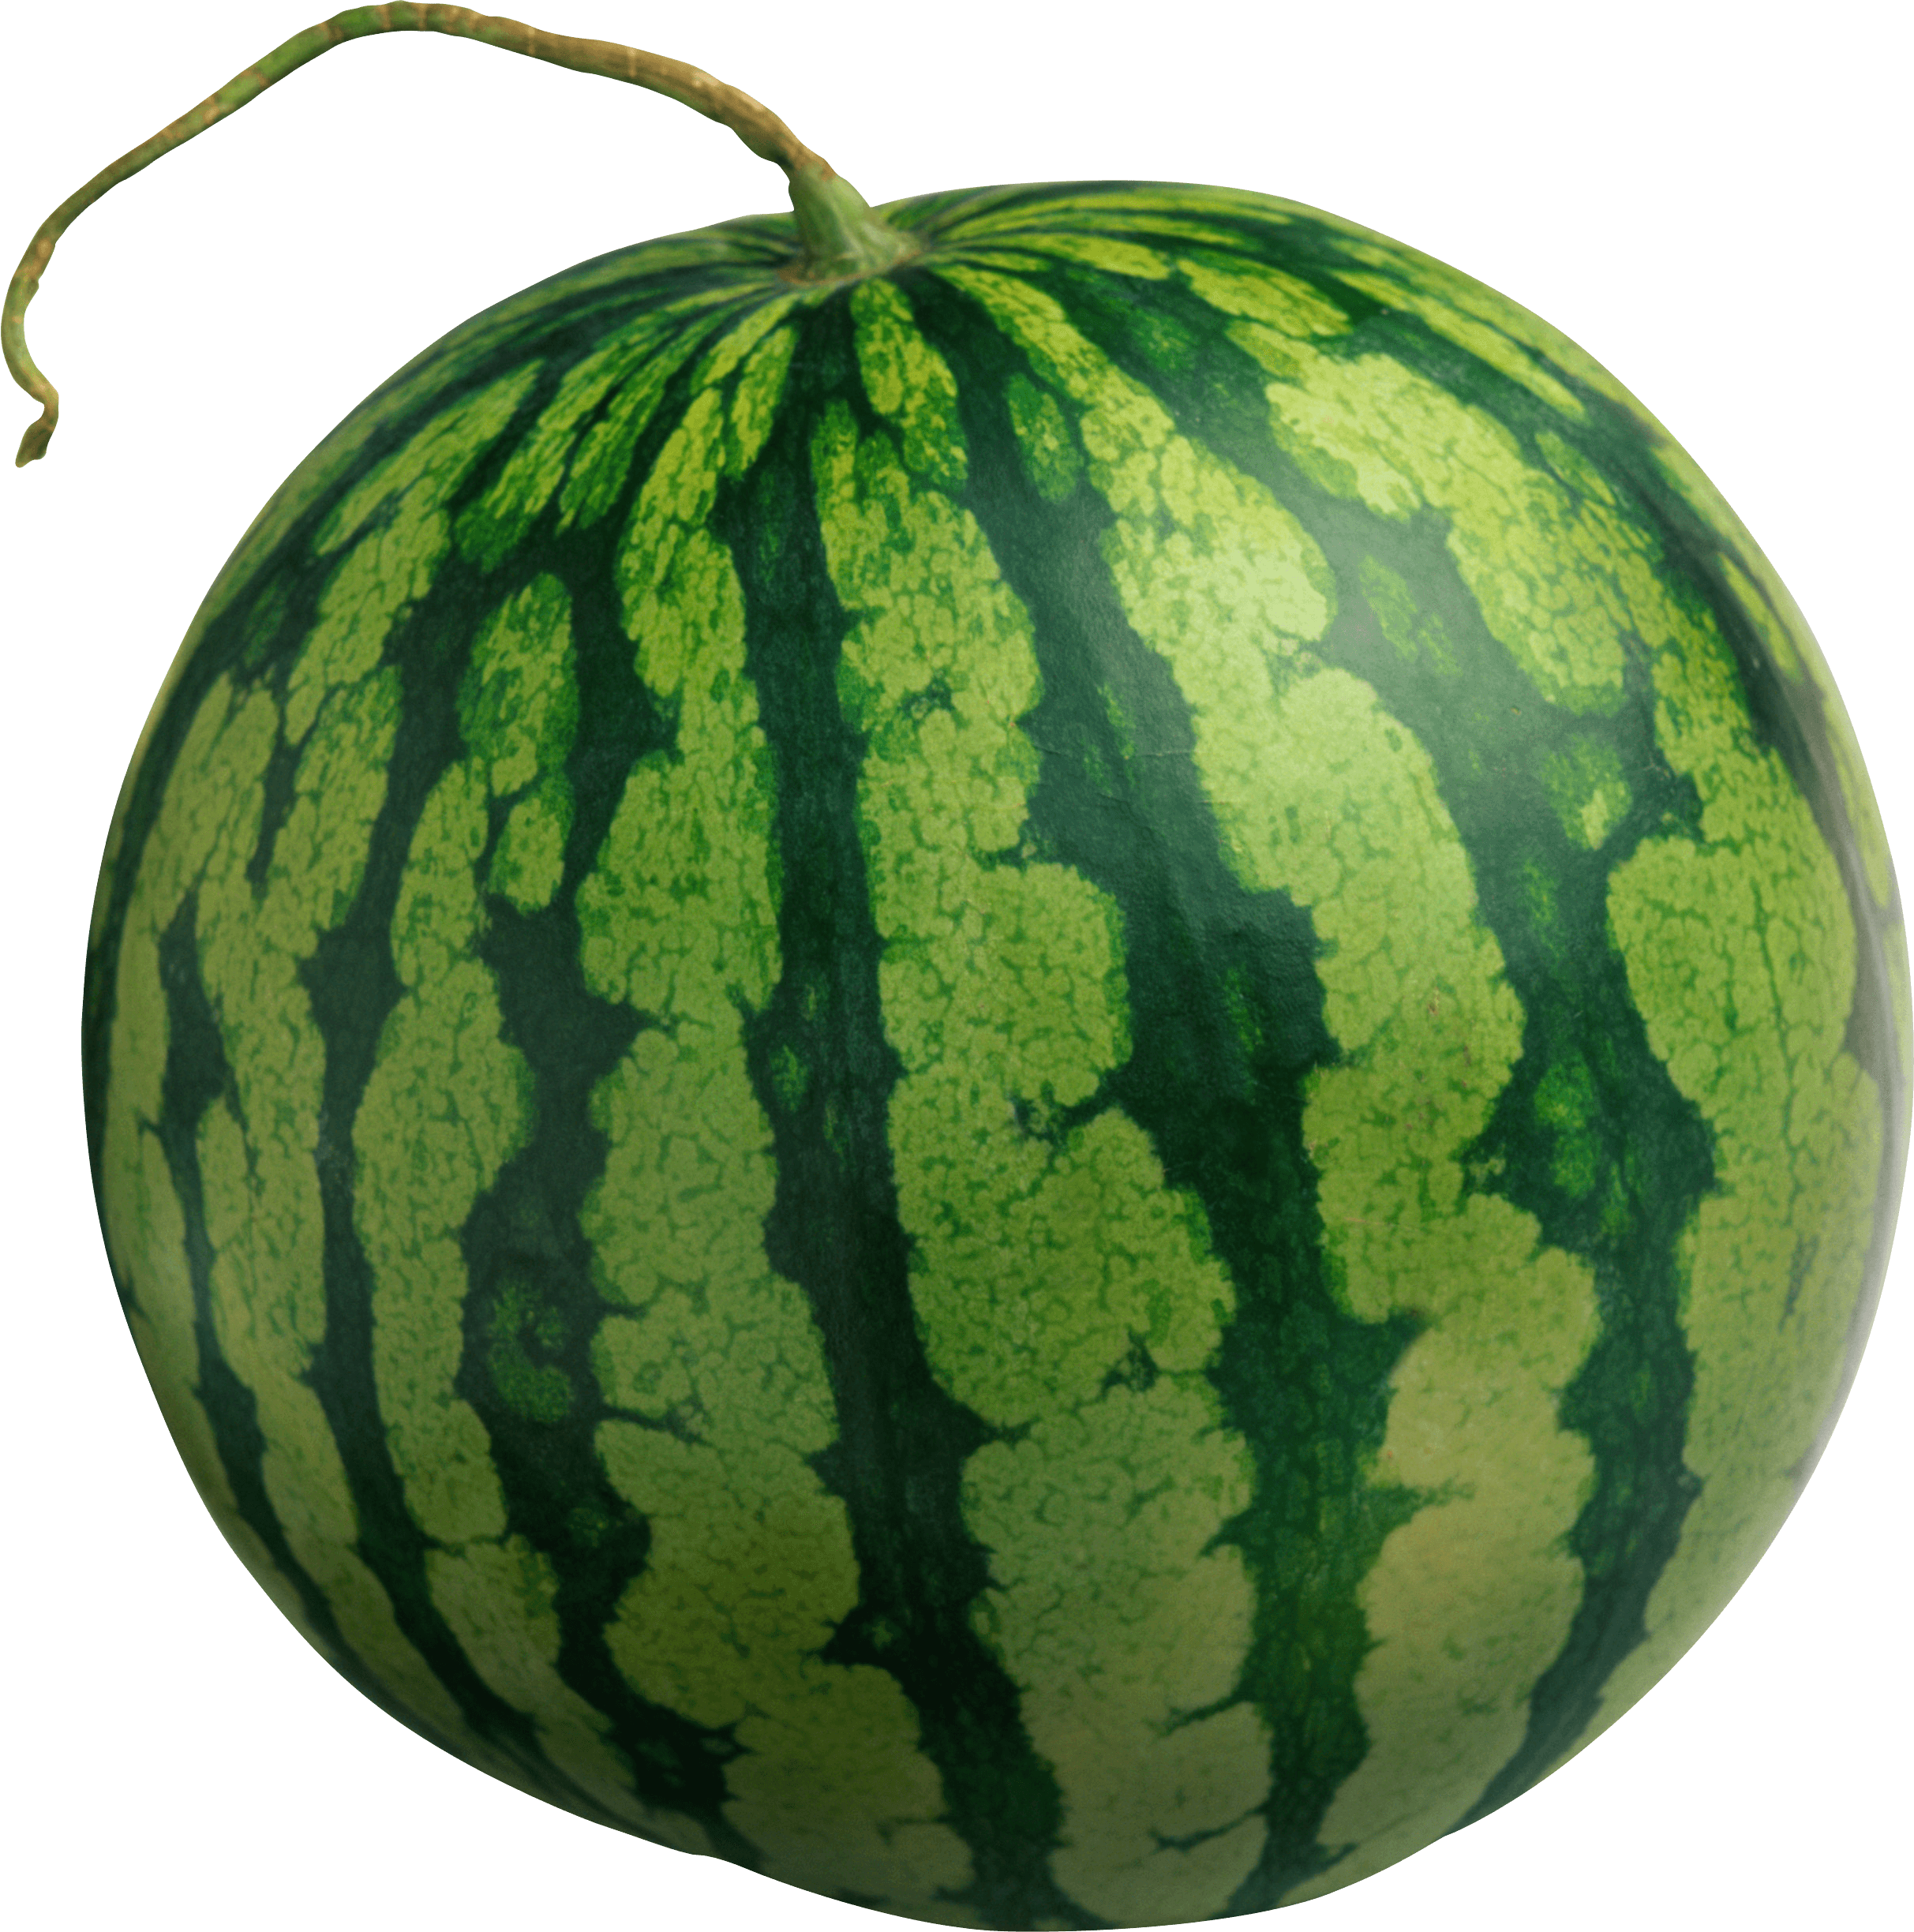 Watermelon clipart transparent background. Large isolated png stickpng